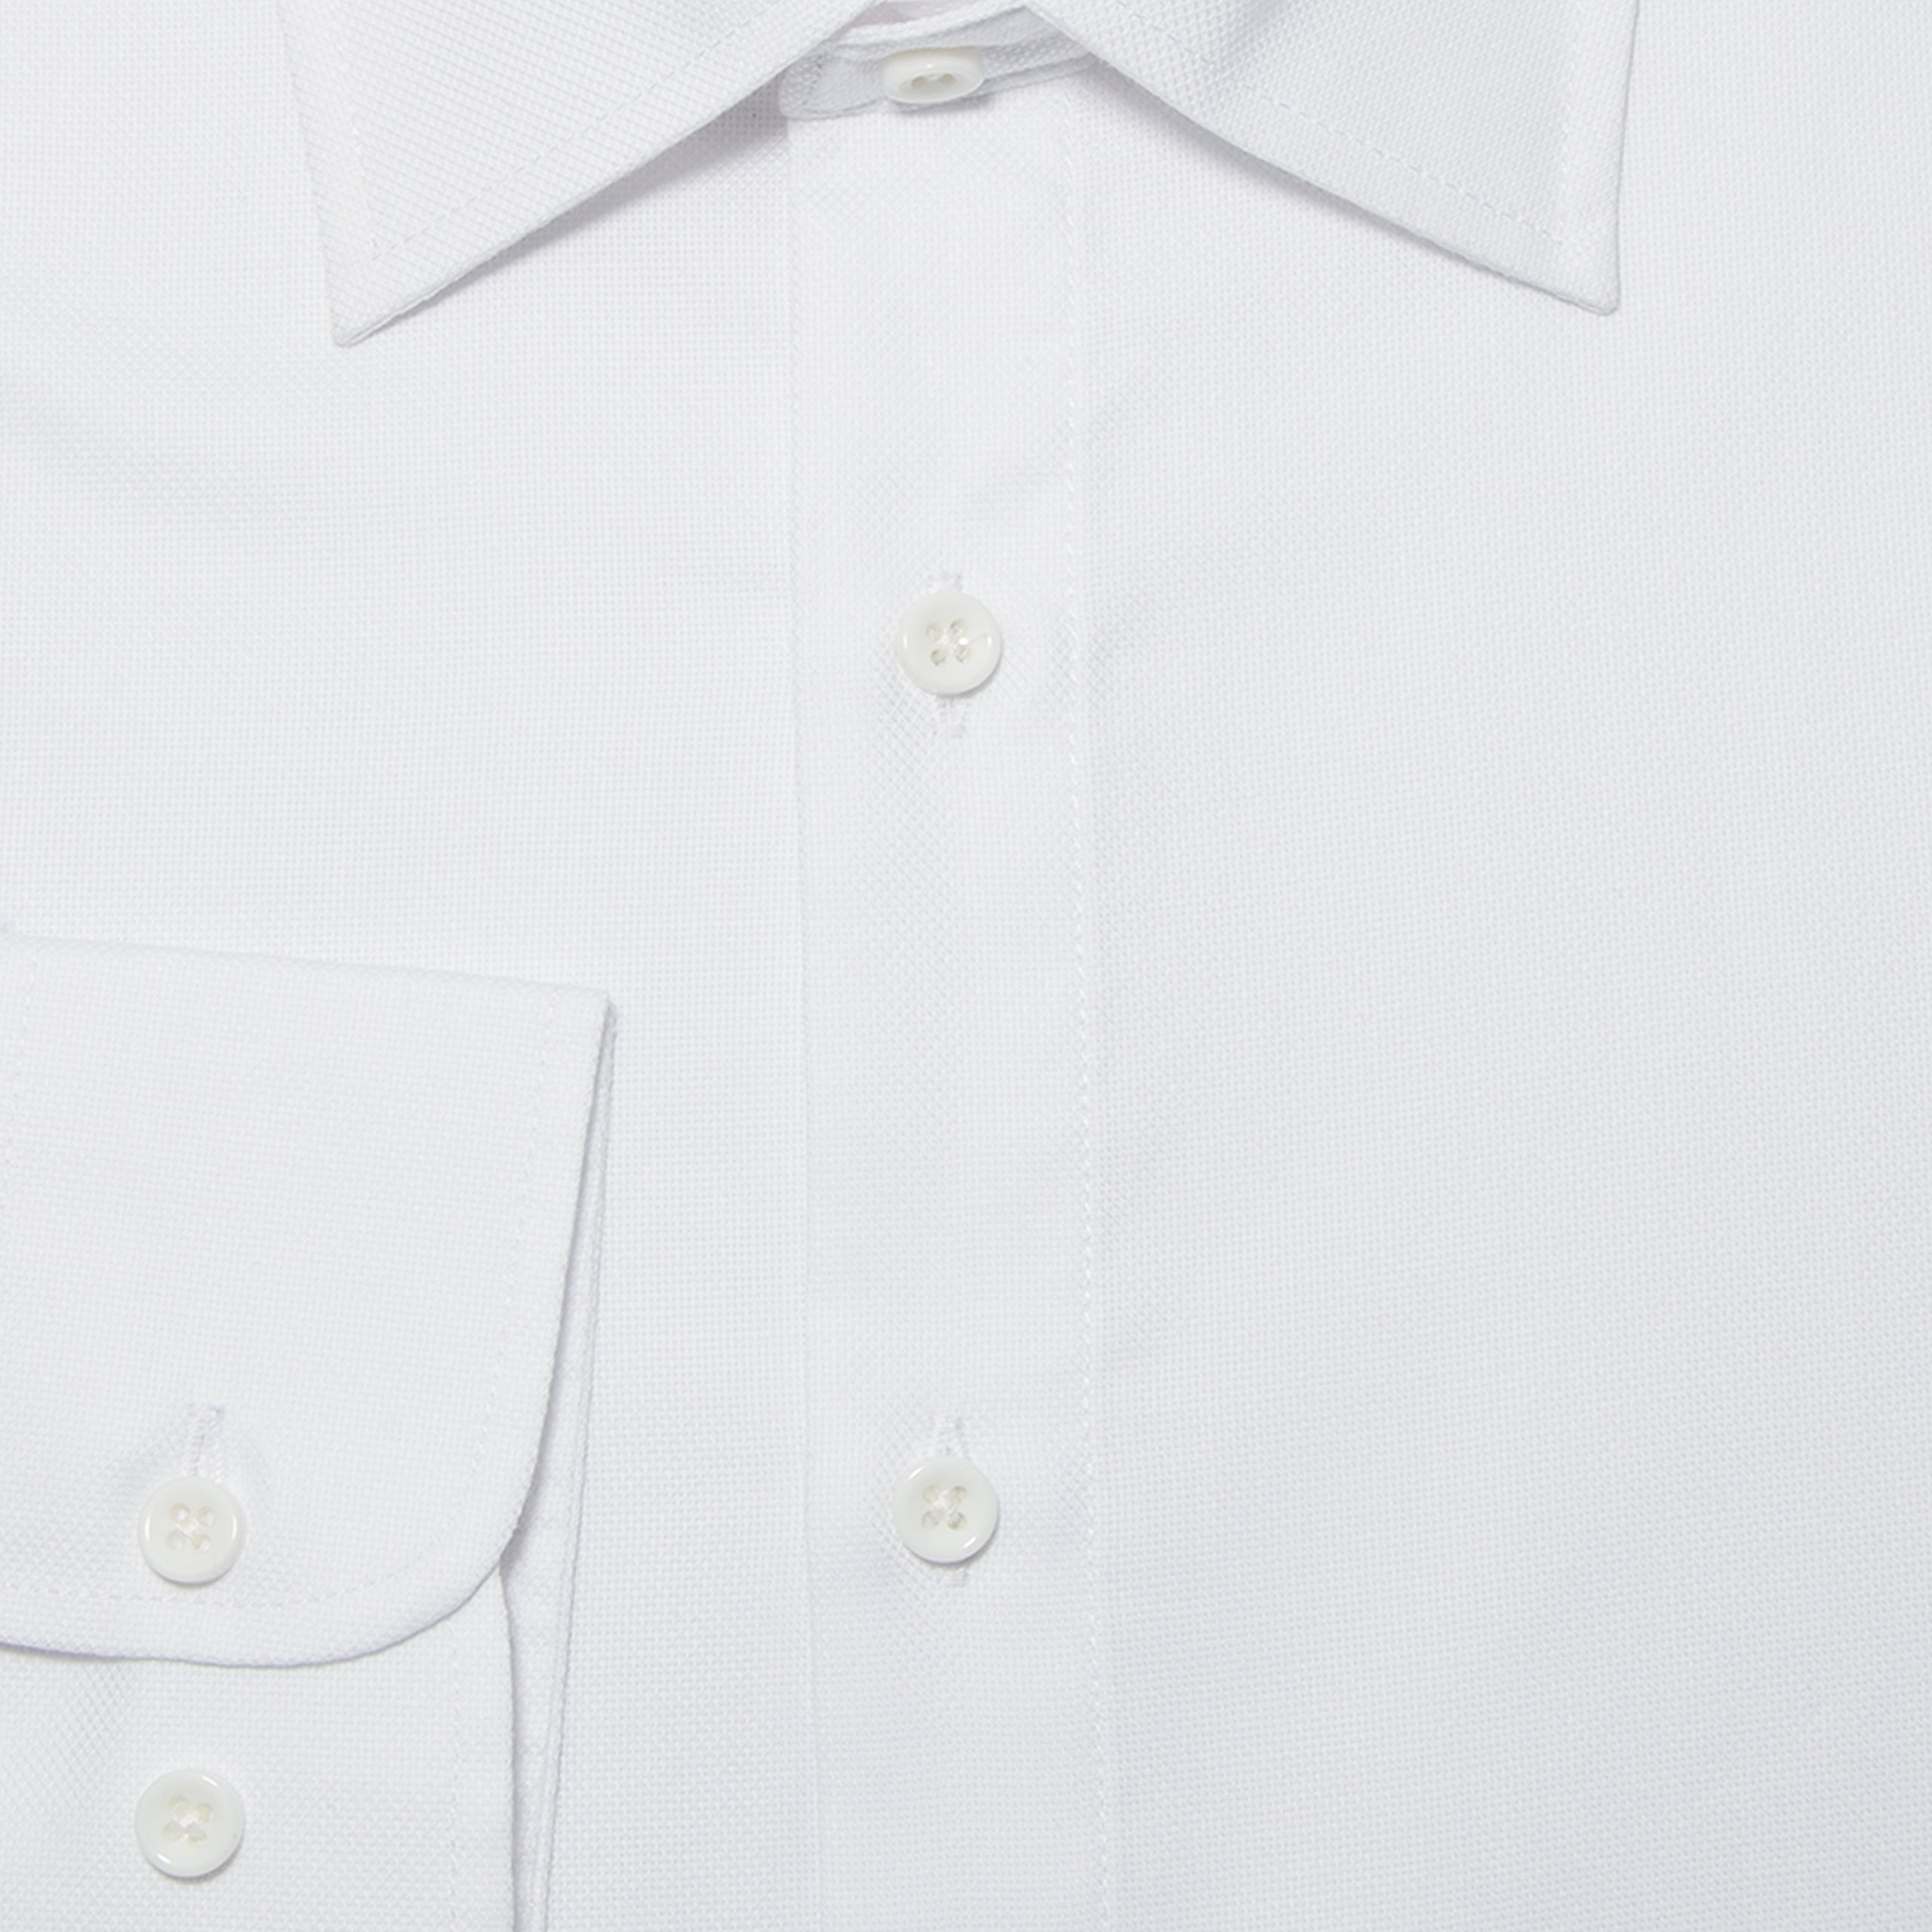 Boot & Cod Men's Classic White Fitted Long Sleeve Button Down Dress Shirt - XXL by Boot & Cod (Image #2)